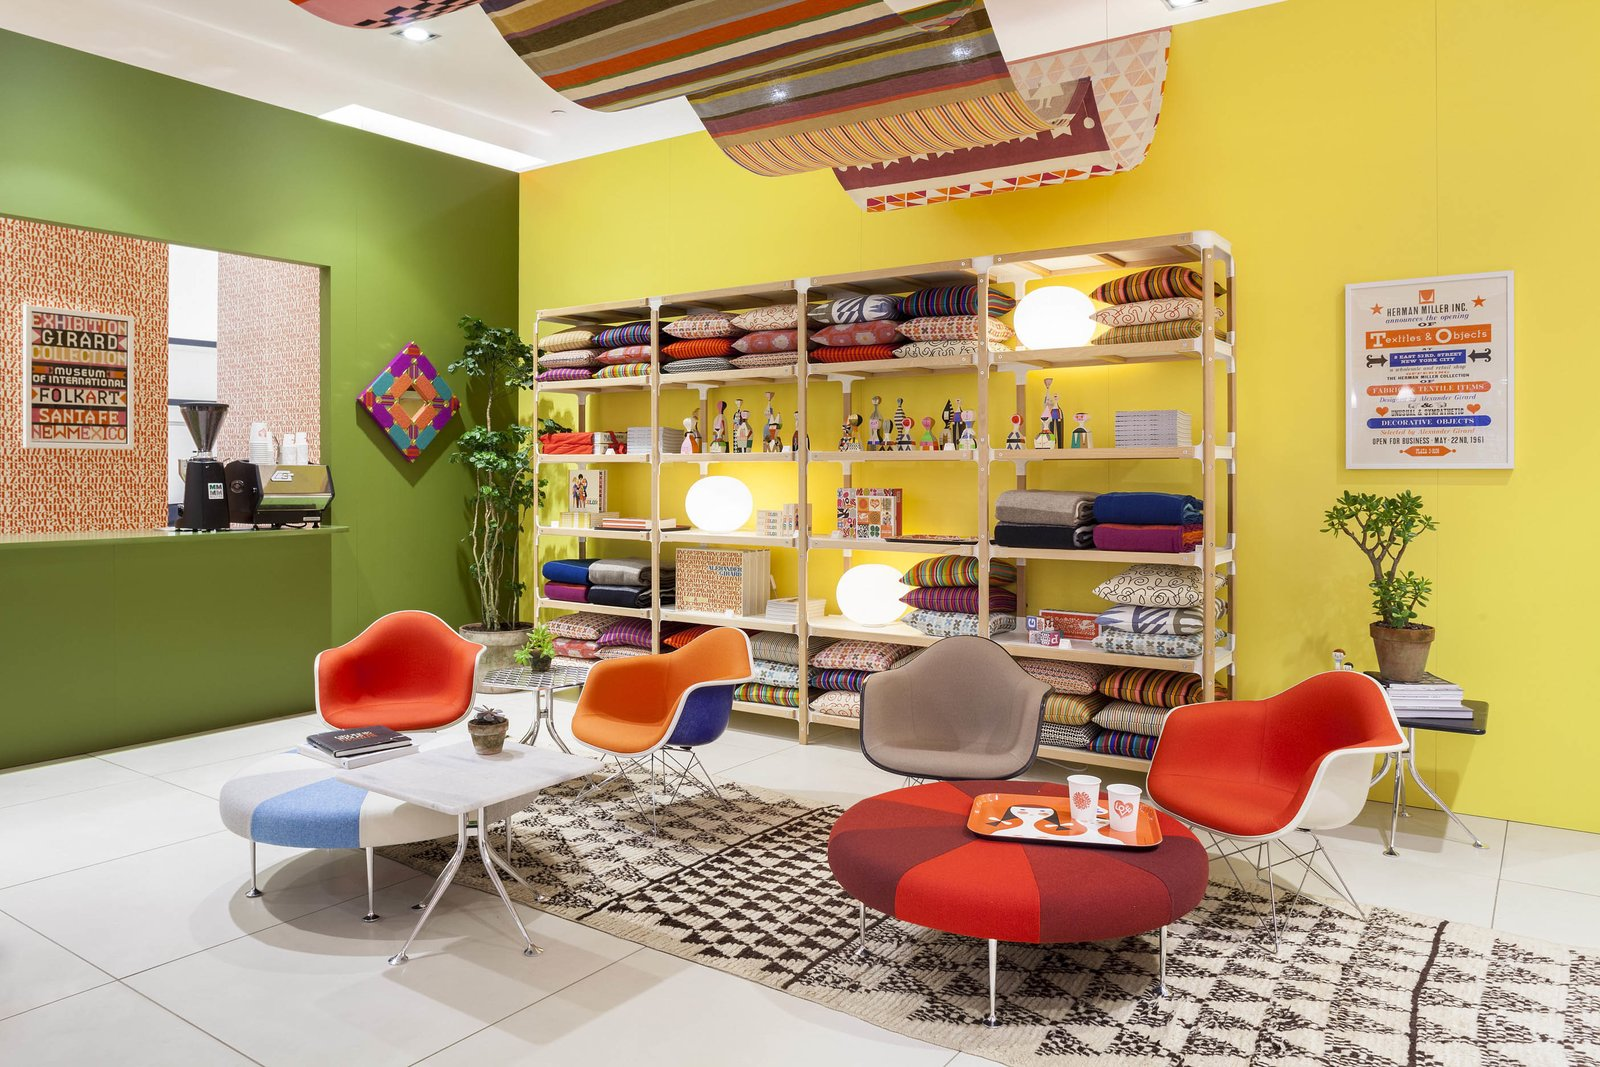 Girard designed the Color Wheel ottomans, shown here, for Braniff International Airways as part of a top-to-bottom rebranding effort in 1965. A reproduction of a poster that Girard designed for his Textiles & Objects store, hangs on the wall at right. Photo courtesy of Herman Miller.  Photo 3 of 5 in Alexander Girard: An Uncommon Vision